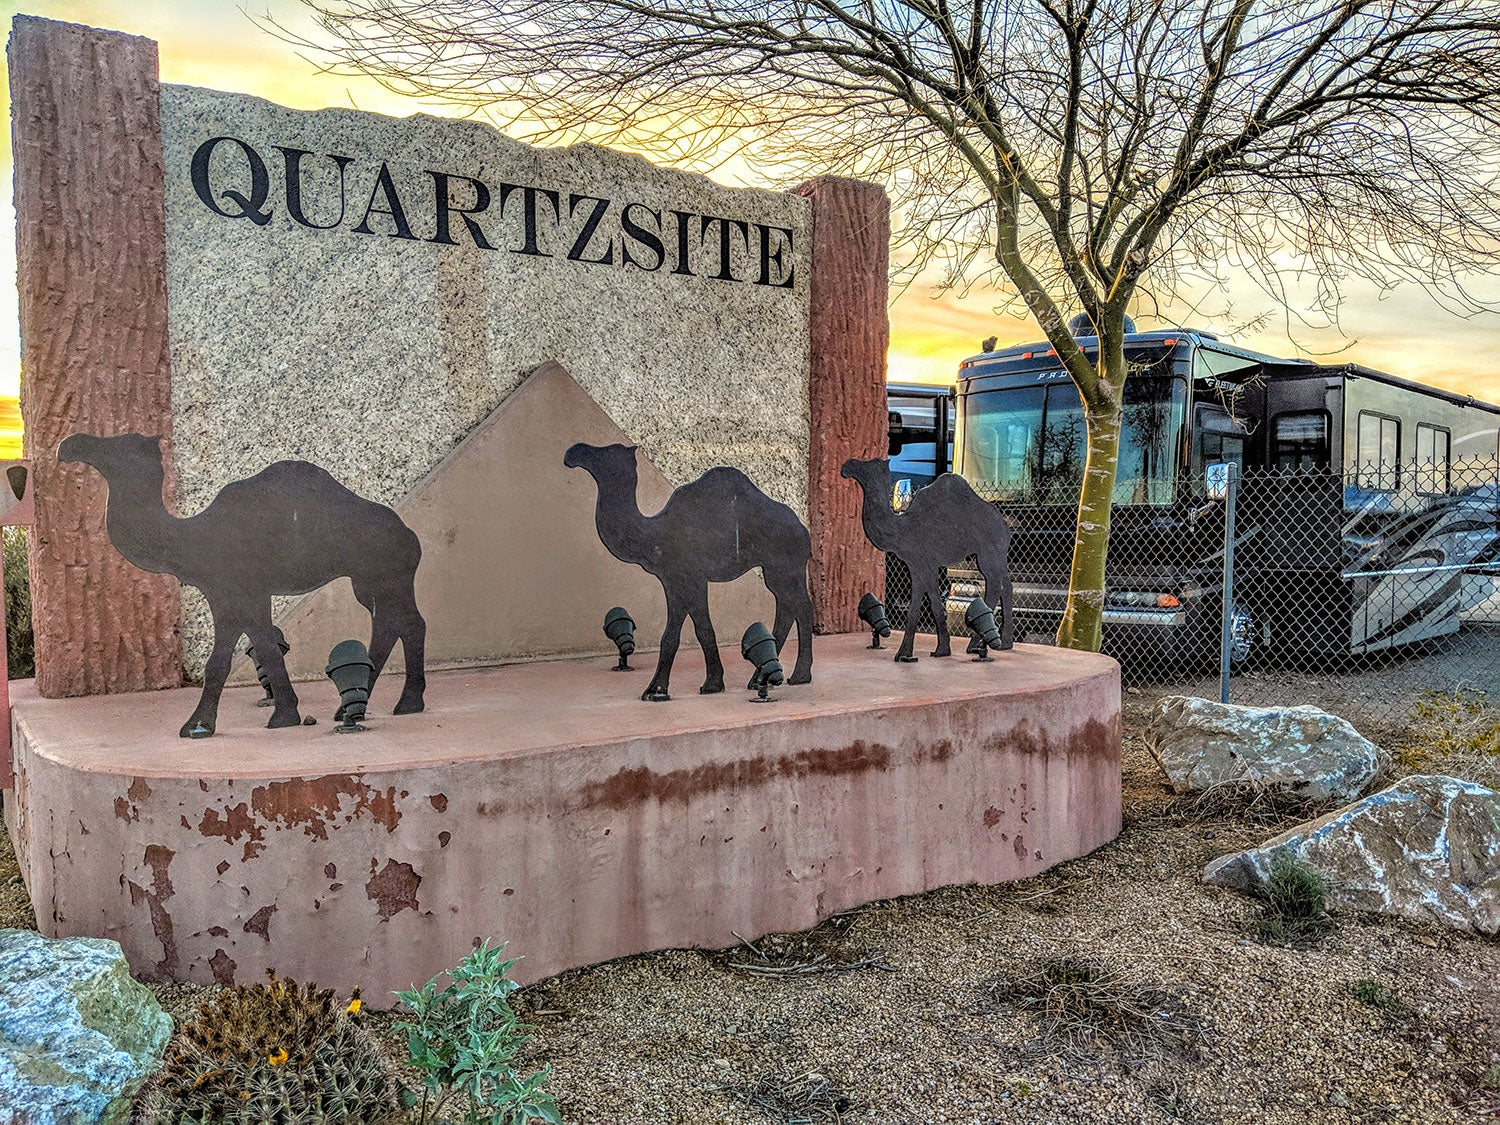 a sign made out of Quartzsite in arizona featuring three metal camels near a pyramid with the name of the town on it, next to a line of RV campers